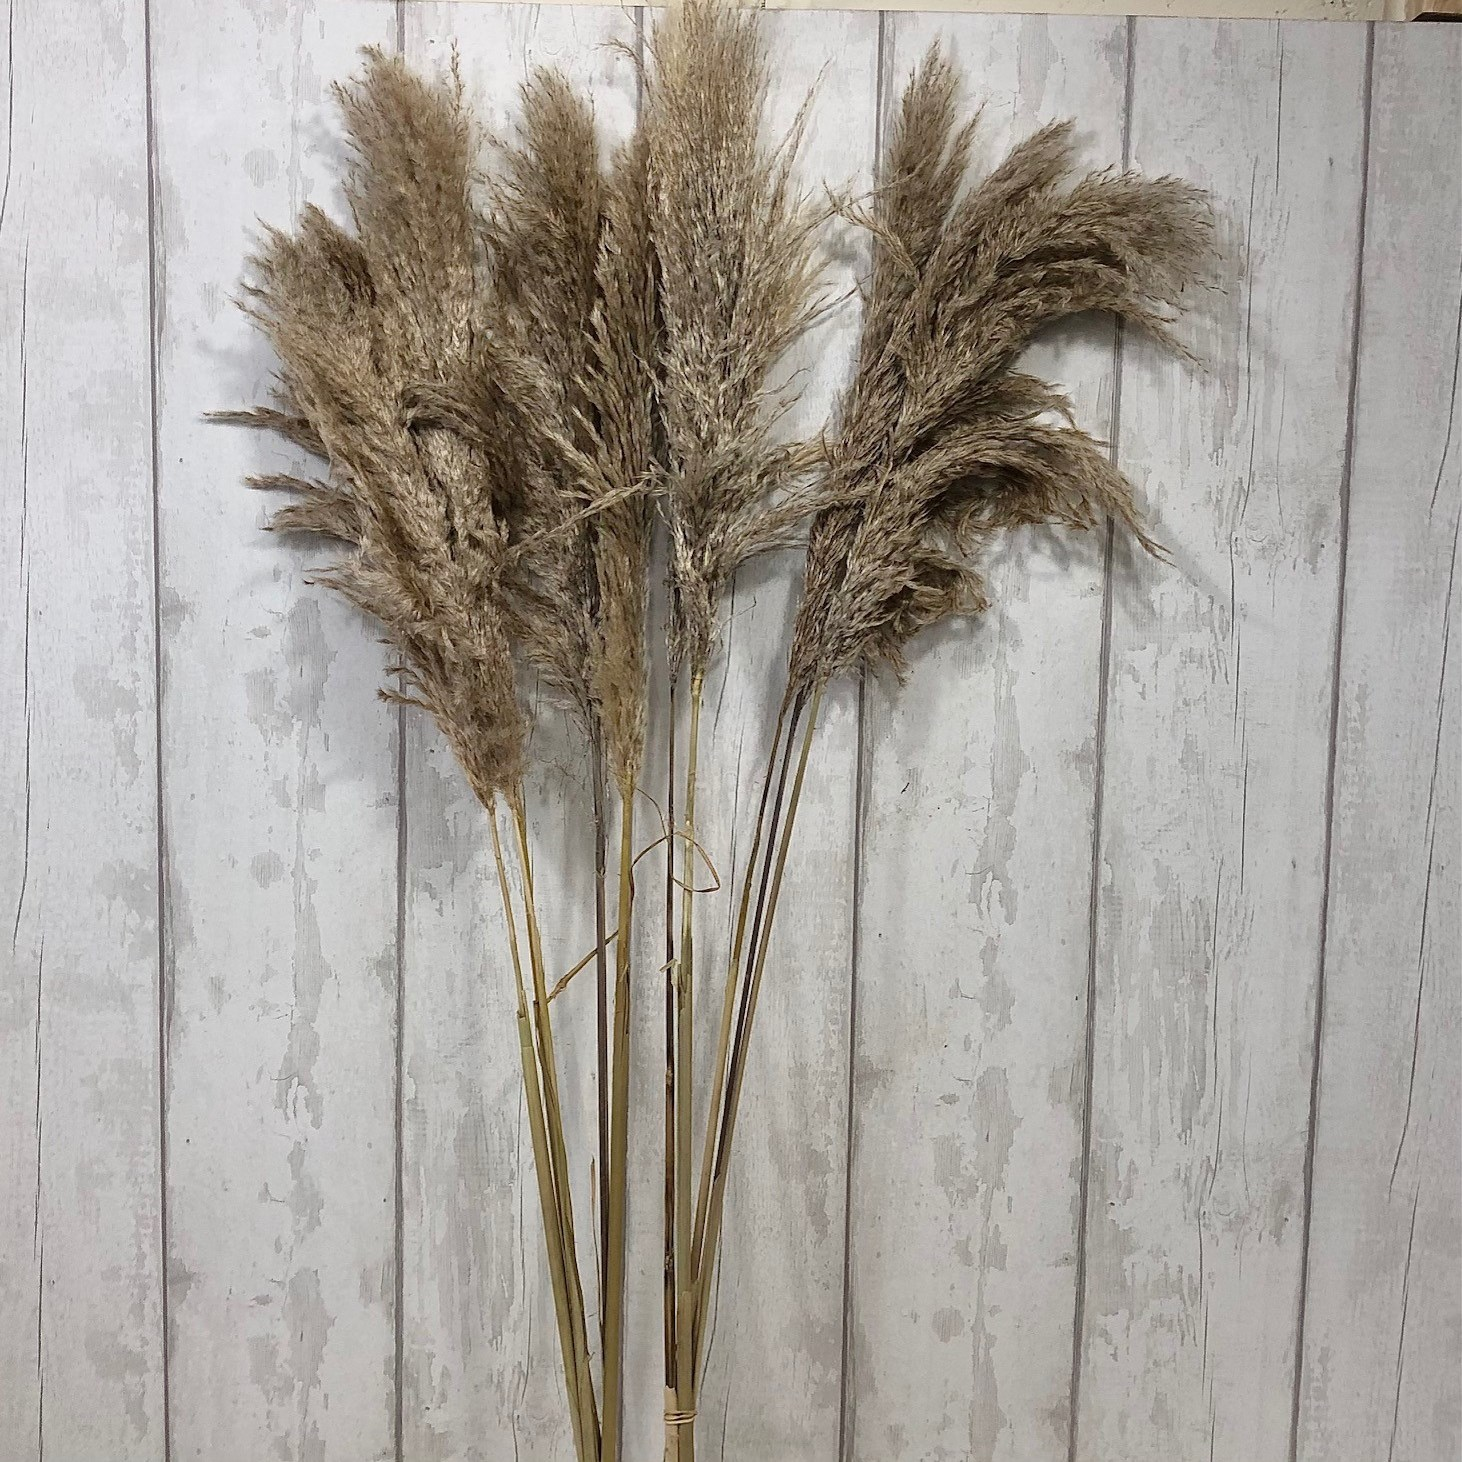 A1 Cortaderia Pampas Grass (Dried)